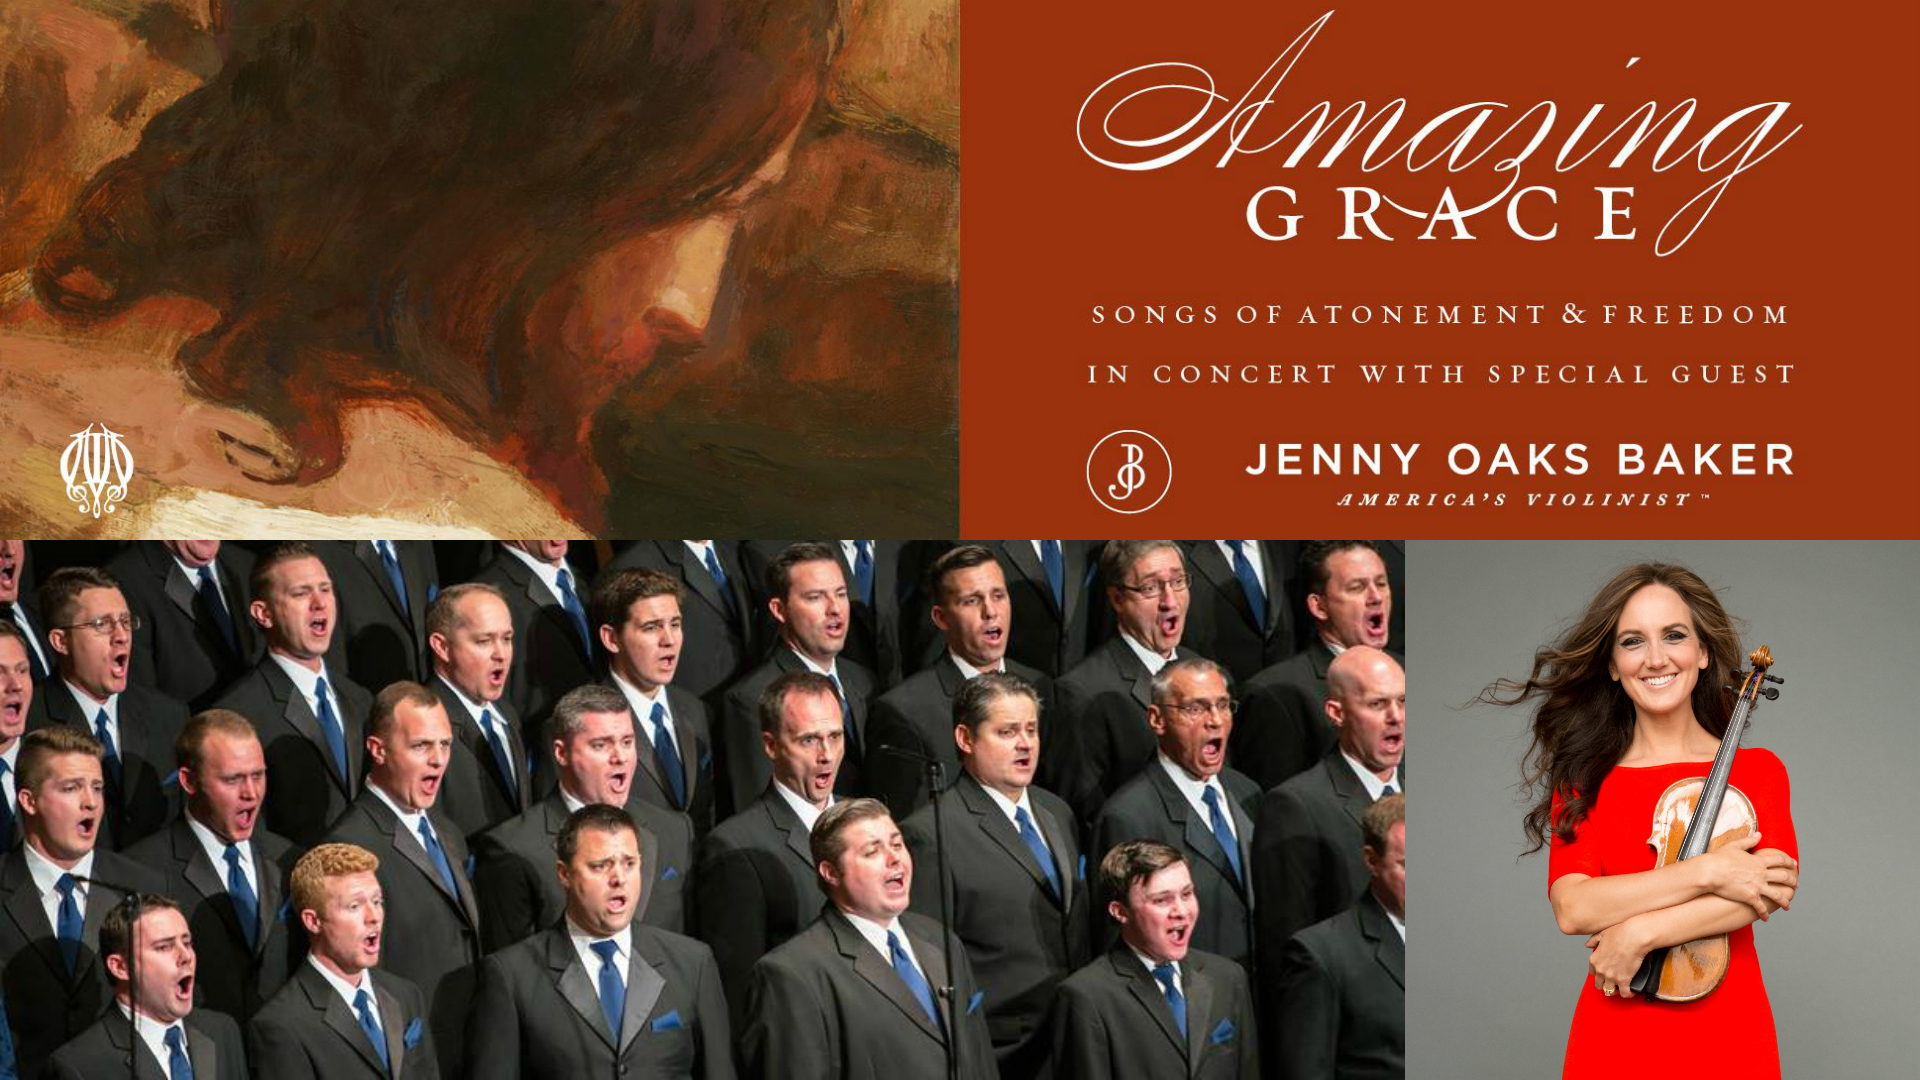 You Must See Amazing Grace- Presented by the Millennial Choirs and Orchestras